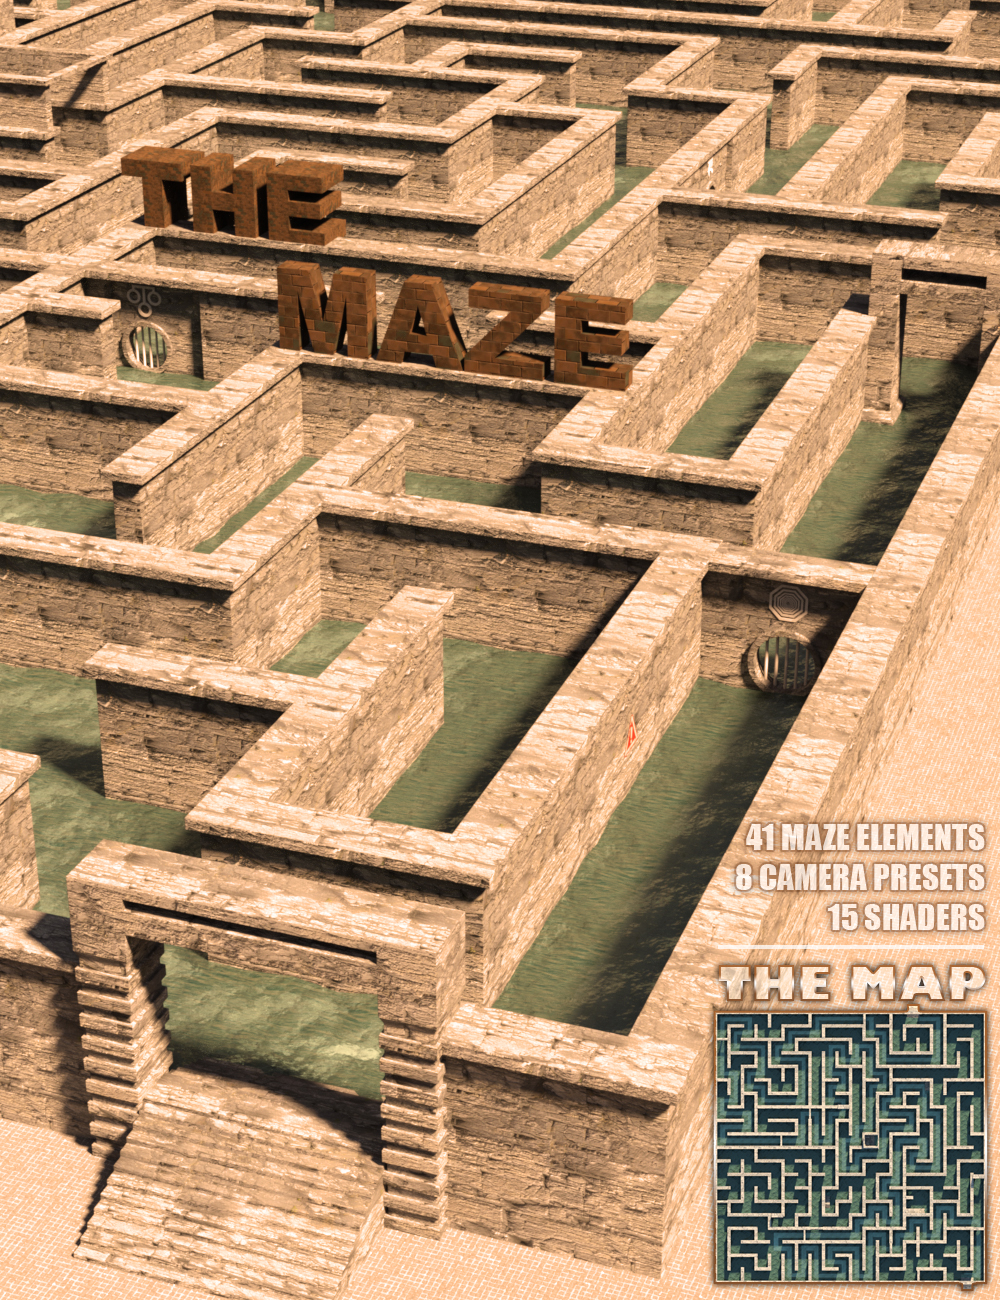 The Maze - Huge Labyrinth for Daz Studio by: Aedilium, 3D Models by Daz 3D